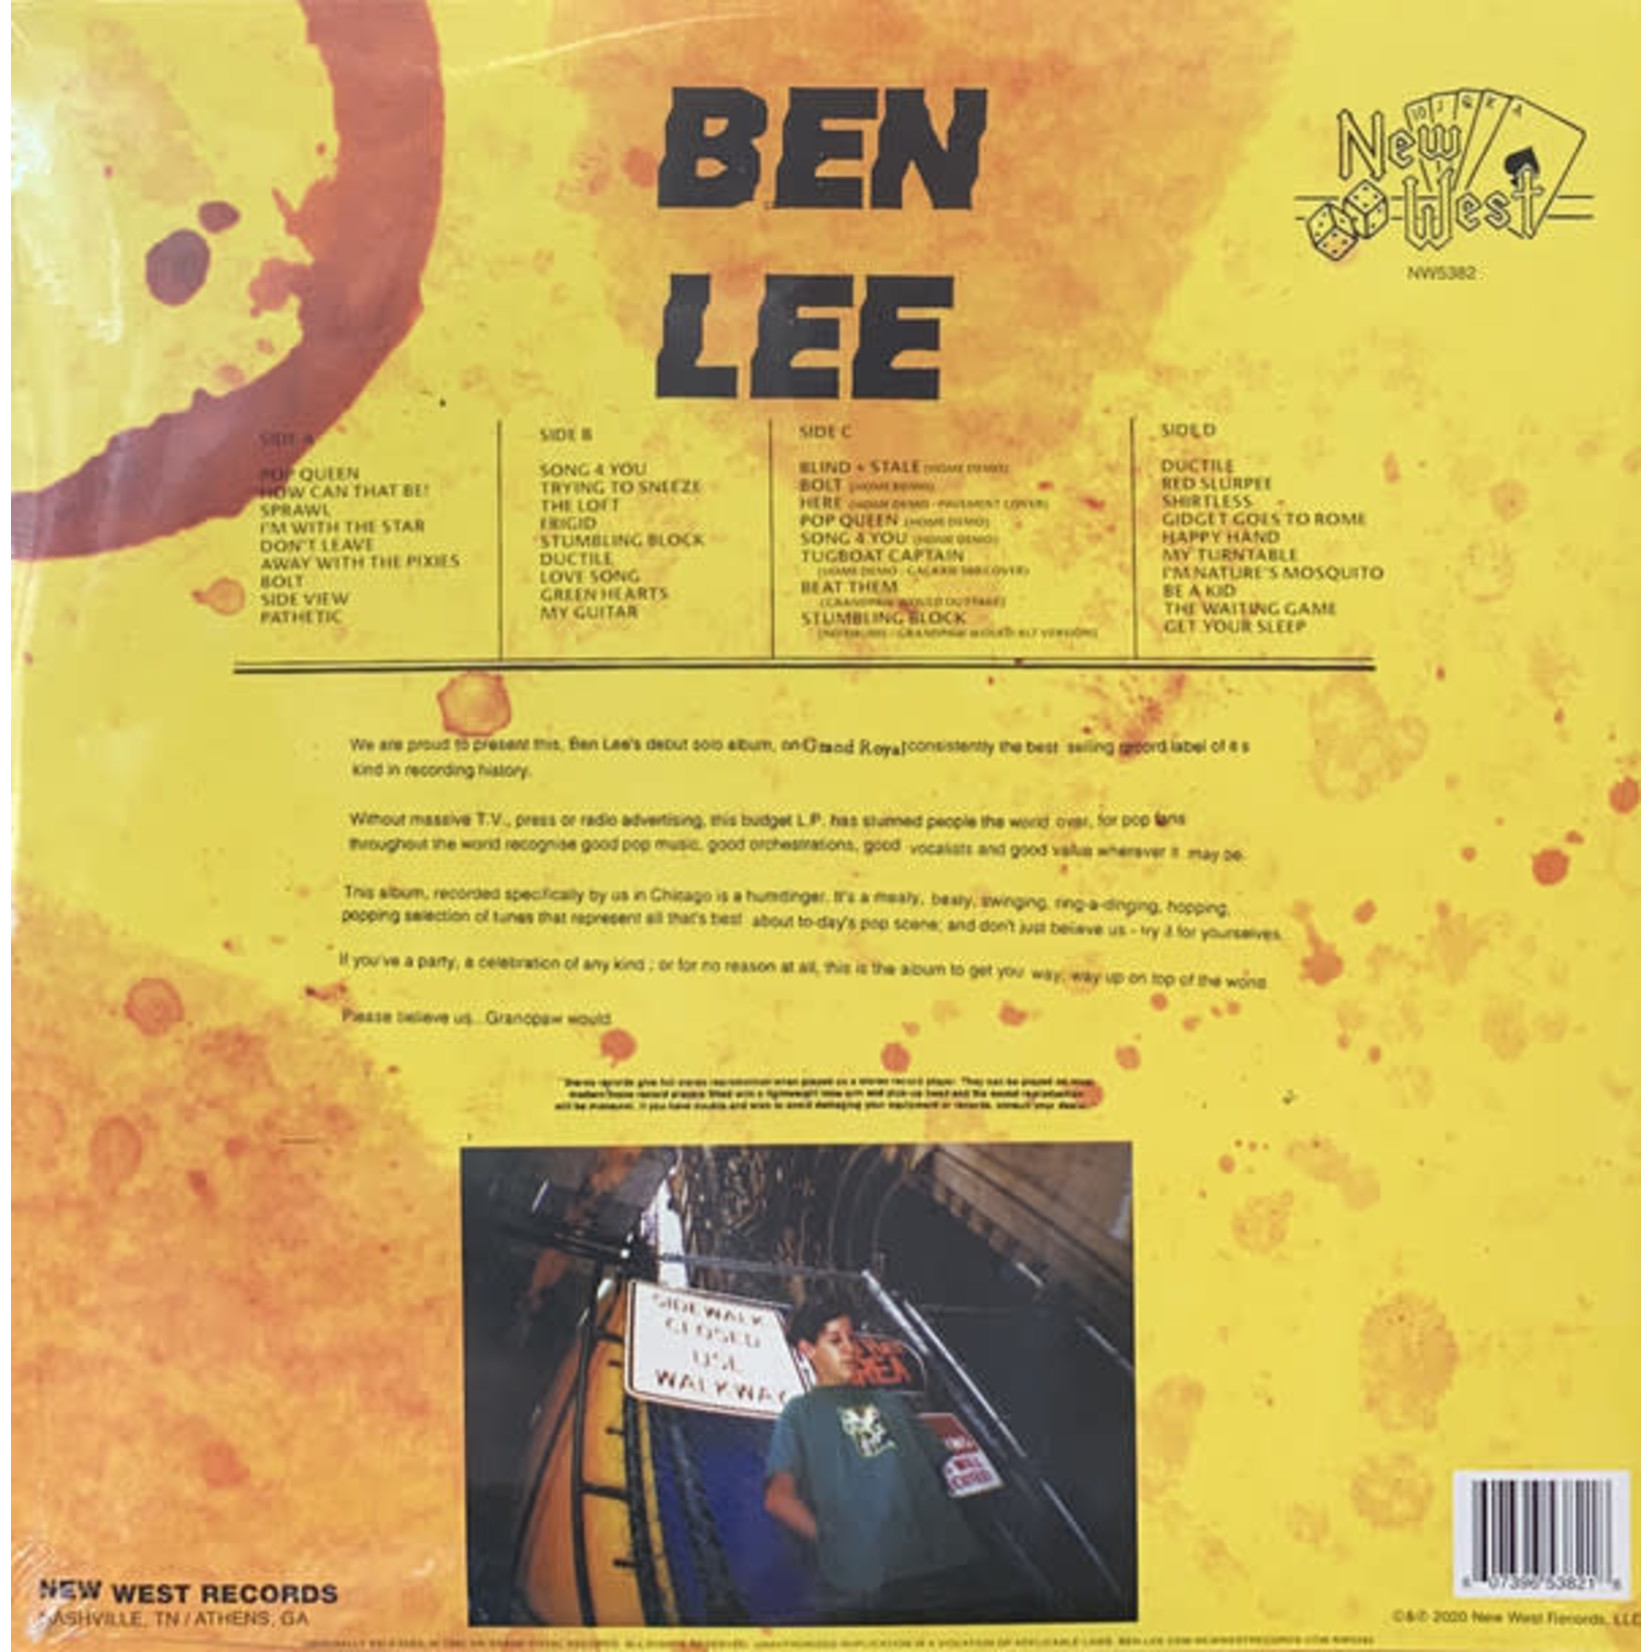 BEN LEE GRANDPAW WOULD (25TH ANNIVERSARY DELUXE EDITION) (BIRTHDAY CAKE VINYL)